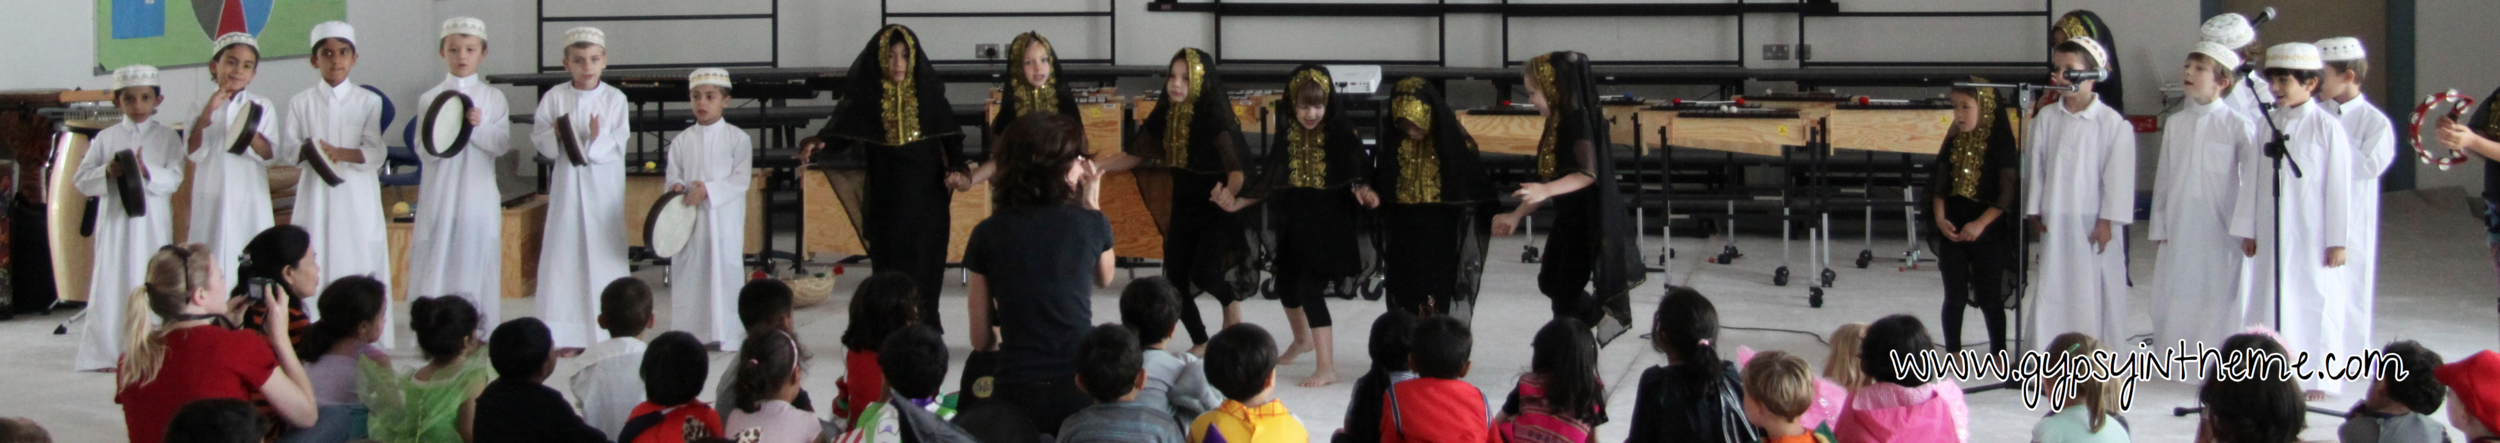 Traditional National dance performed by expat kids as part of International Day activities at school.